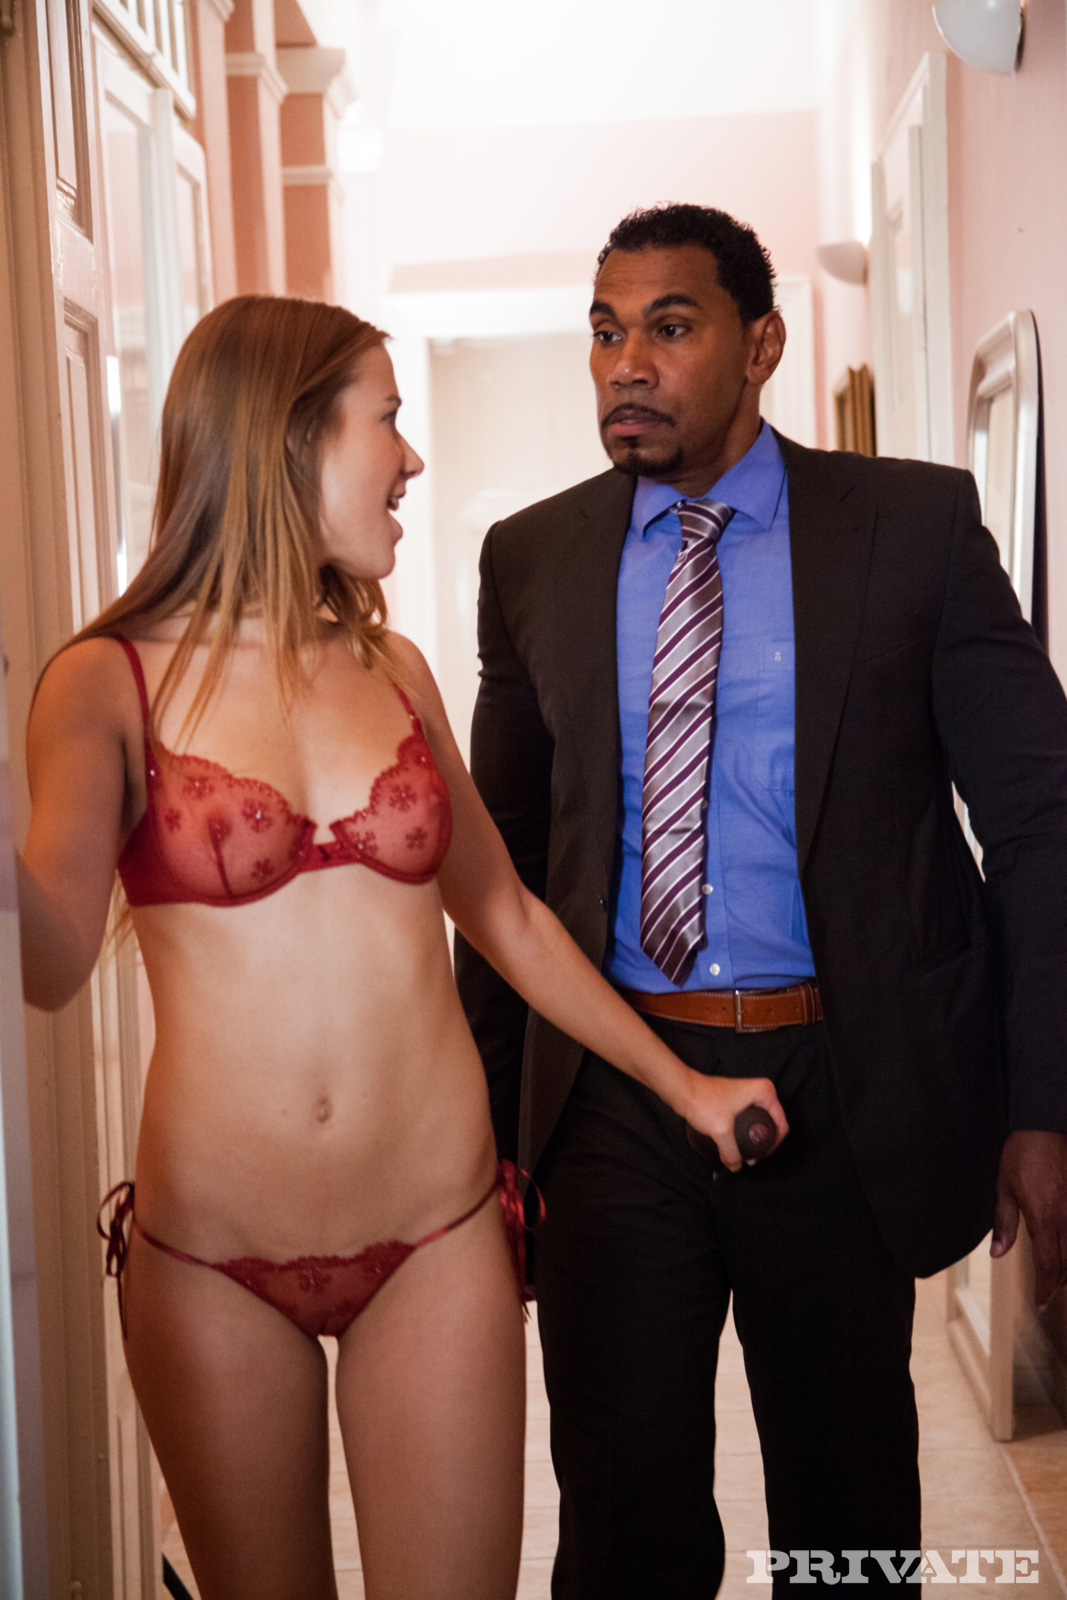 cdnhw galleries private slim blonde alexis fucks a black guy with a big cock 3 ttl